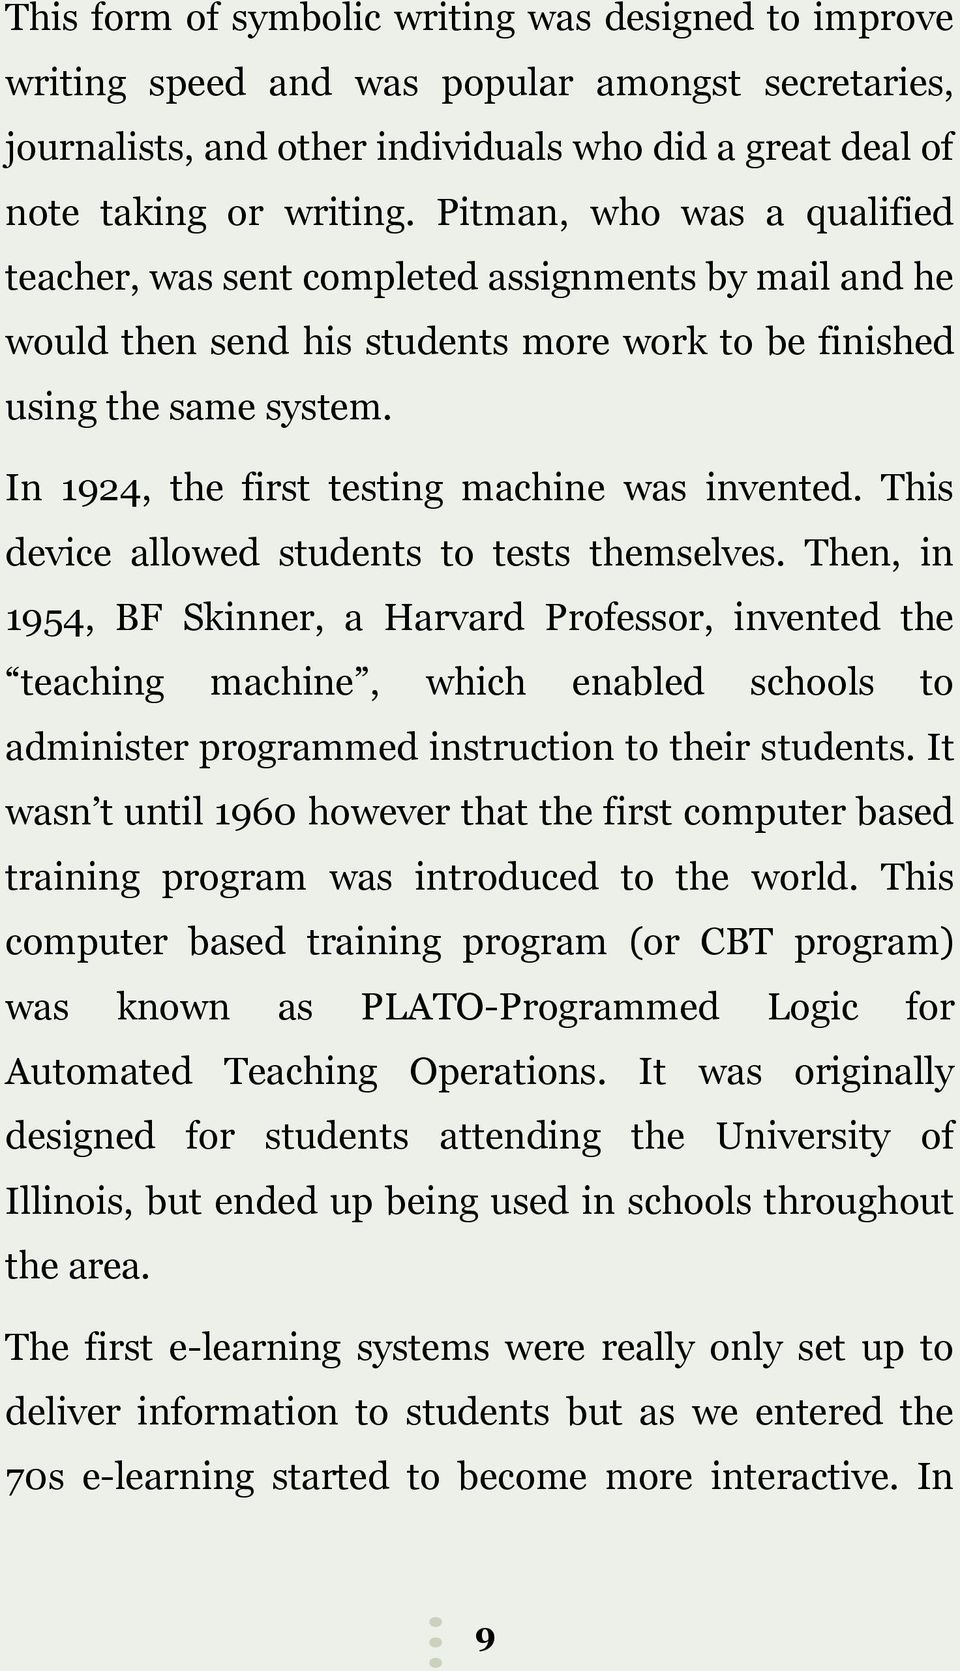 In 1924, the first testing machine was invented. This device allowed students to tests themselves.